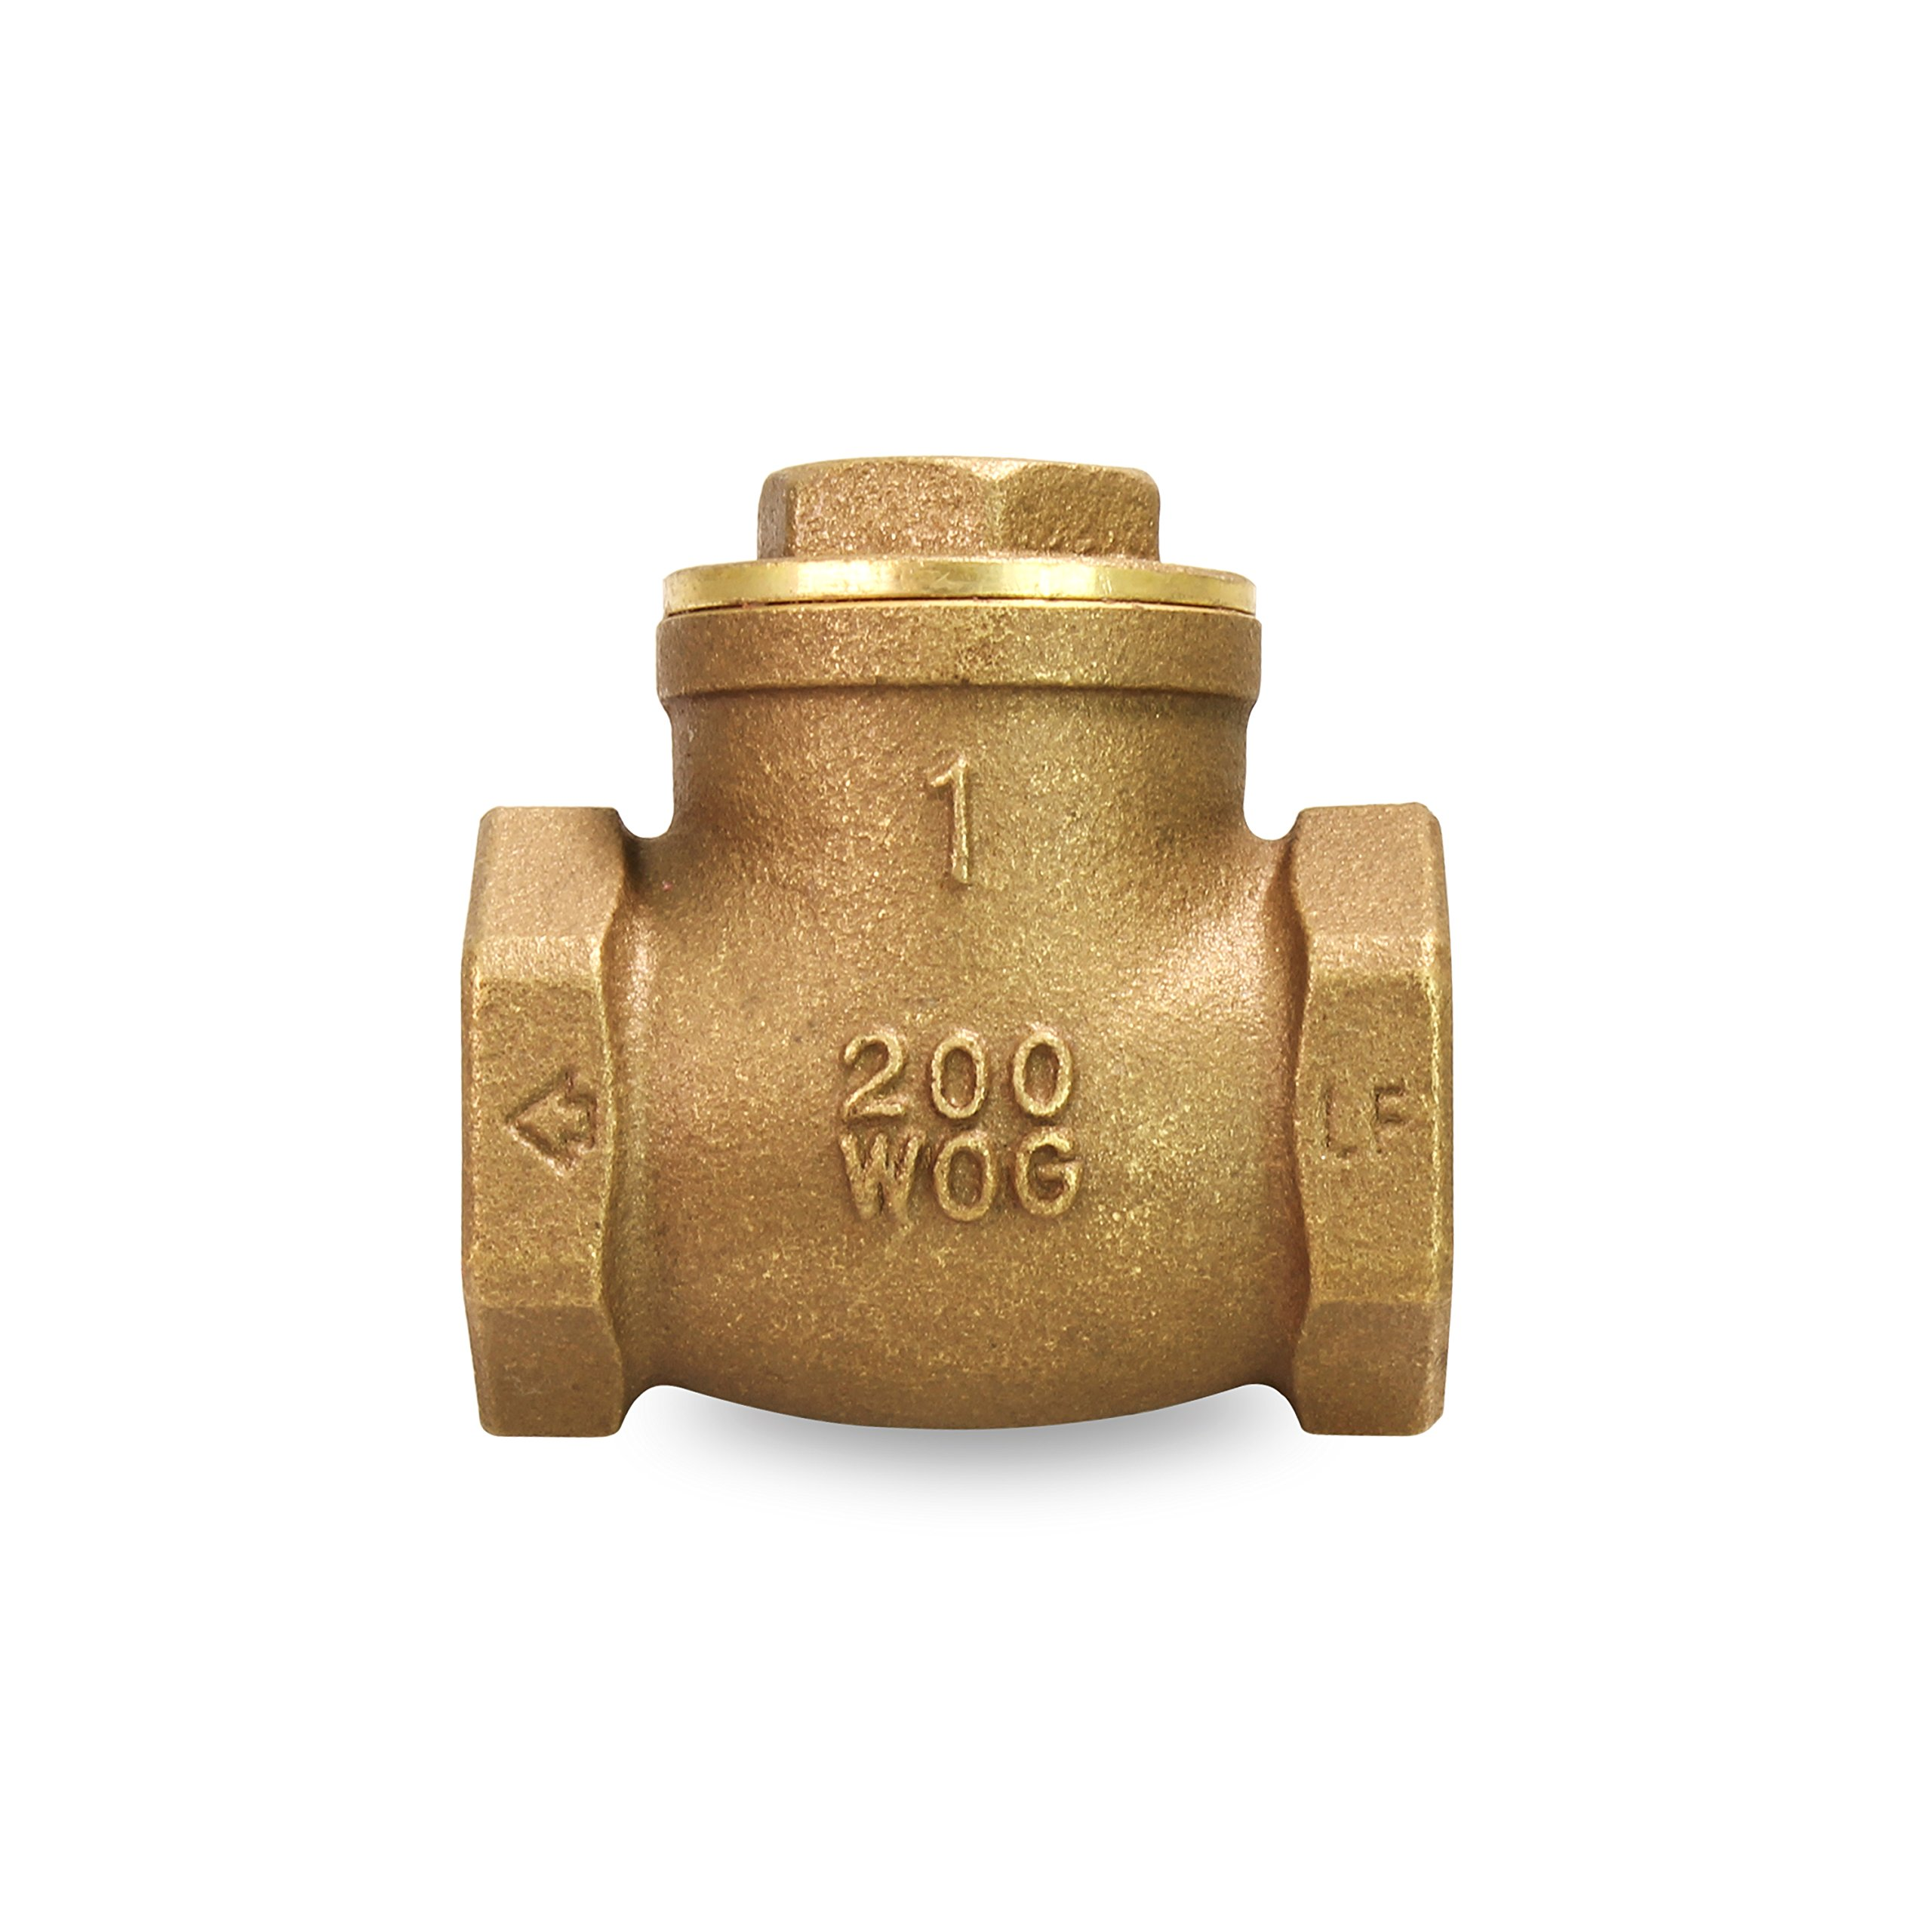 Everflow 210T001-NL 1-Inch Lead Free Brass Swing Check Valve with Female NPT Threaded, 200 PSI WOG & 125 PSI SWP, Brass Construction, Higher Corrosion Resistance Economical, Durable & Easy to Install by Everflow Supplies (Image #2)